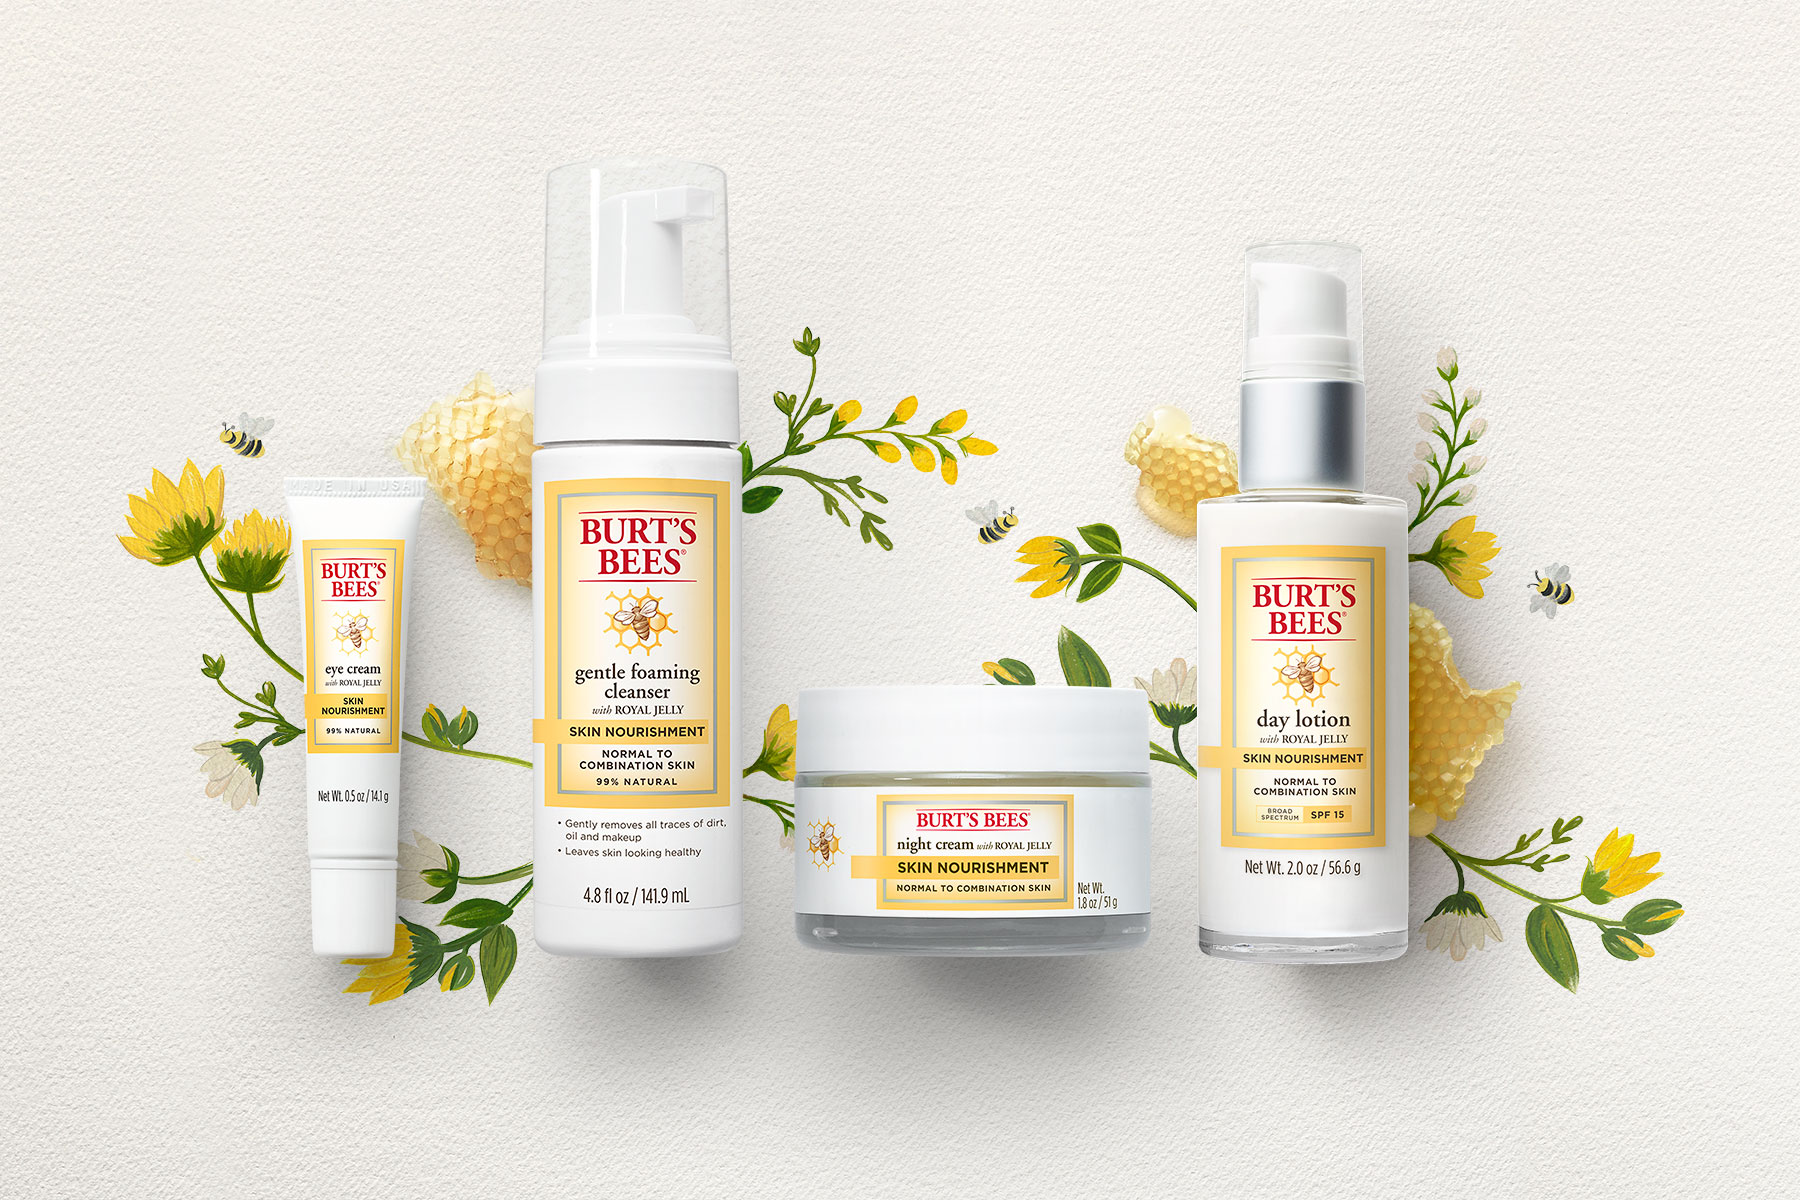 NEW WORK - Burts Bees